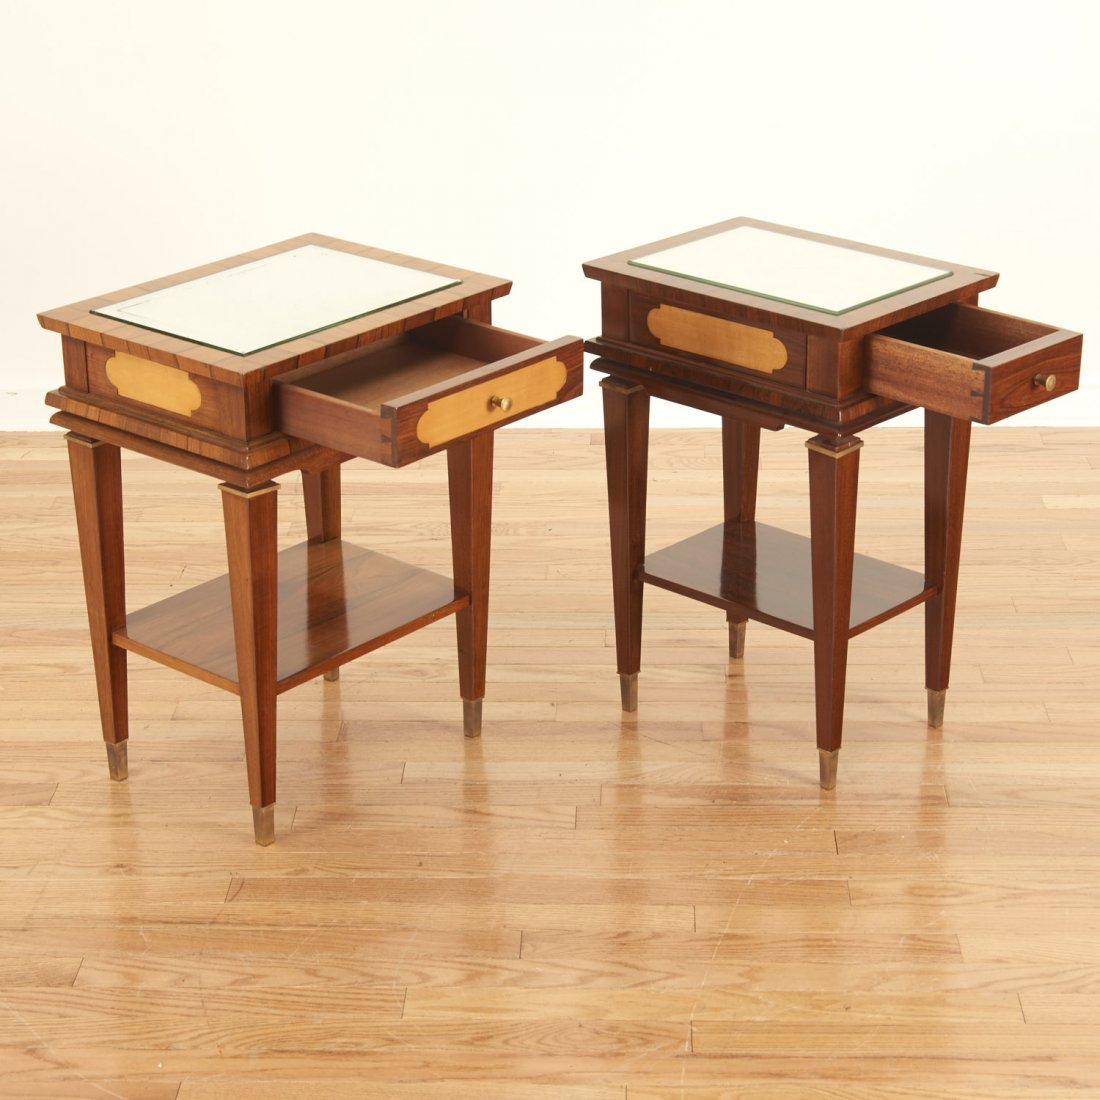 Manner Maxime Old near pair side tables - 2